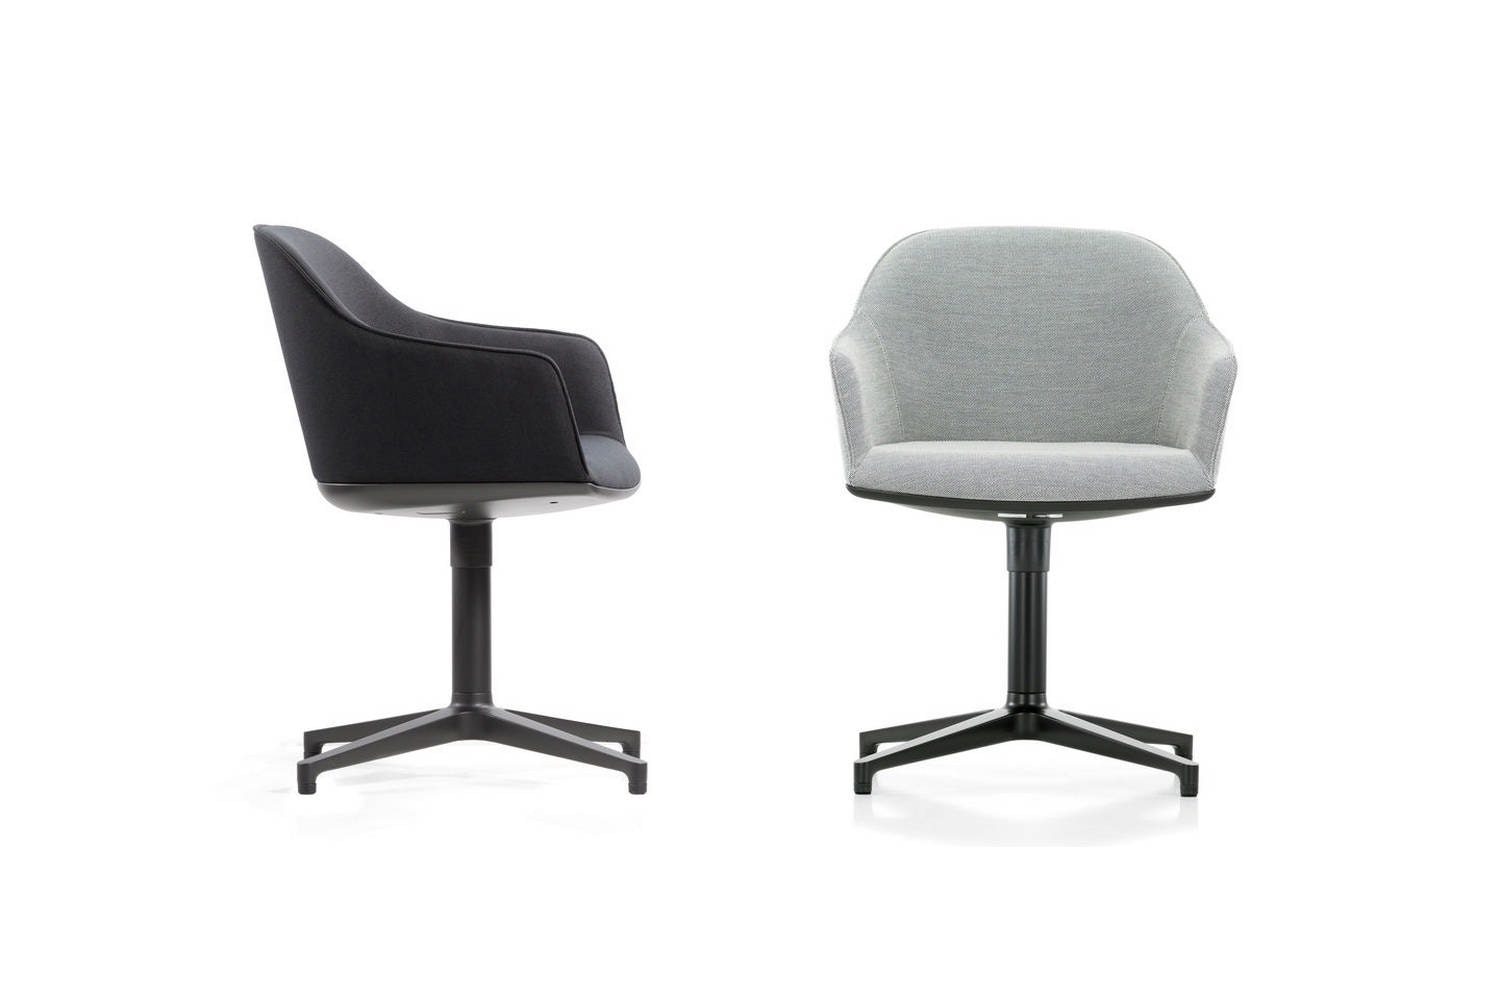 Softshell Chair with Four-Star Base by Ronan & Erwan Bouroullec for Vitra